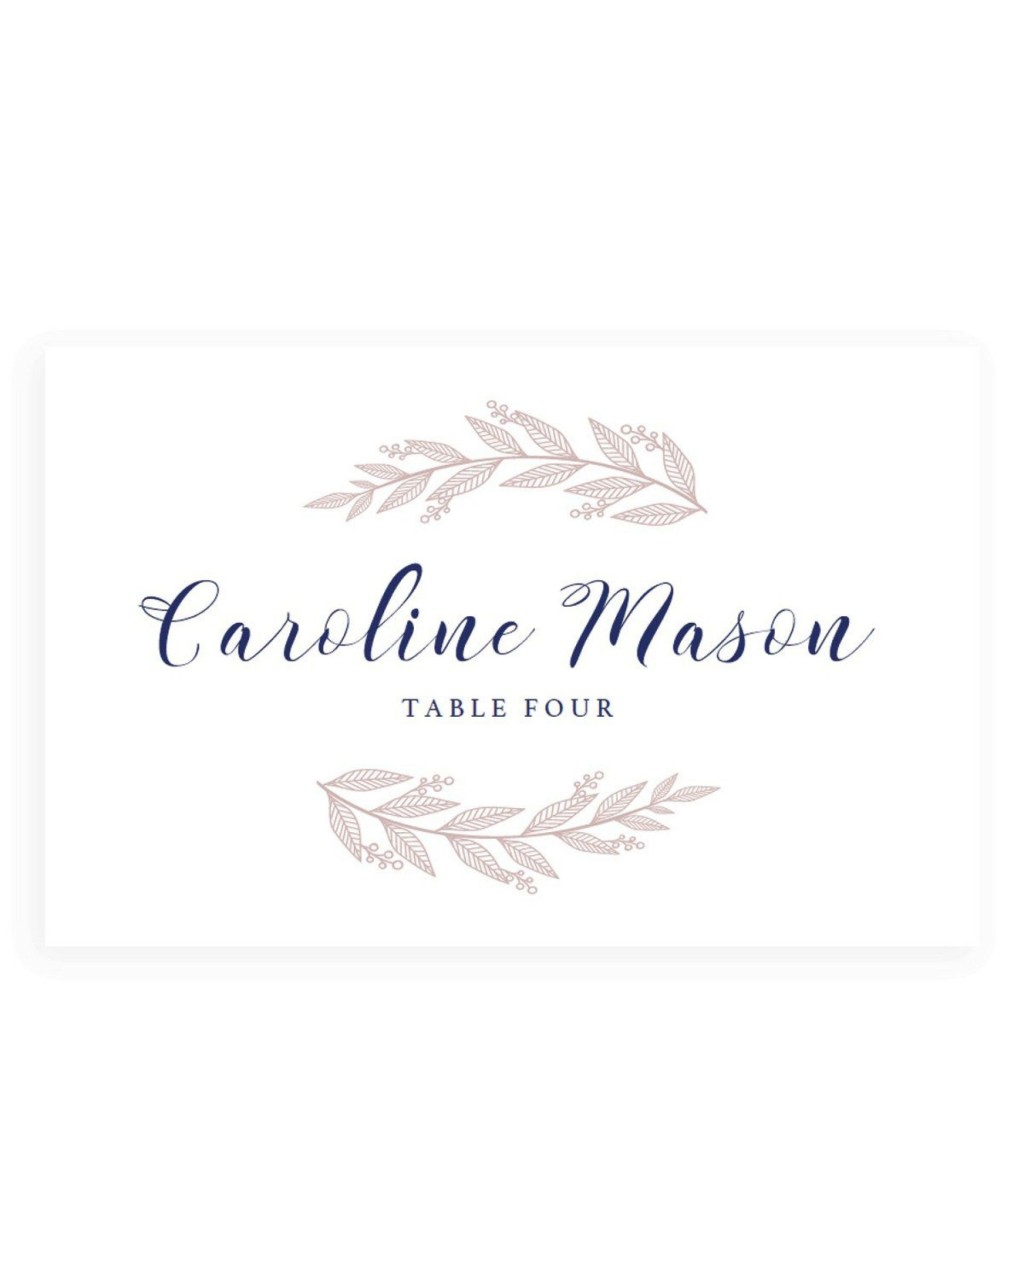 005 Formidable Name Place Card Template For Wedding Highest Clarity  Free WordLarge